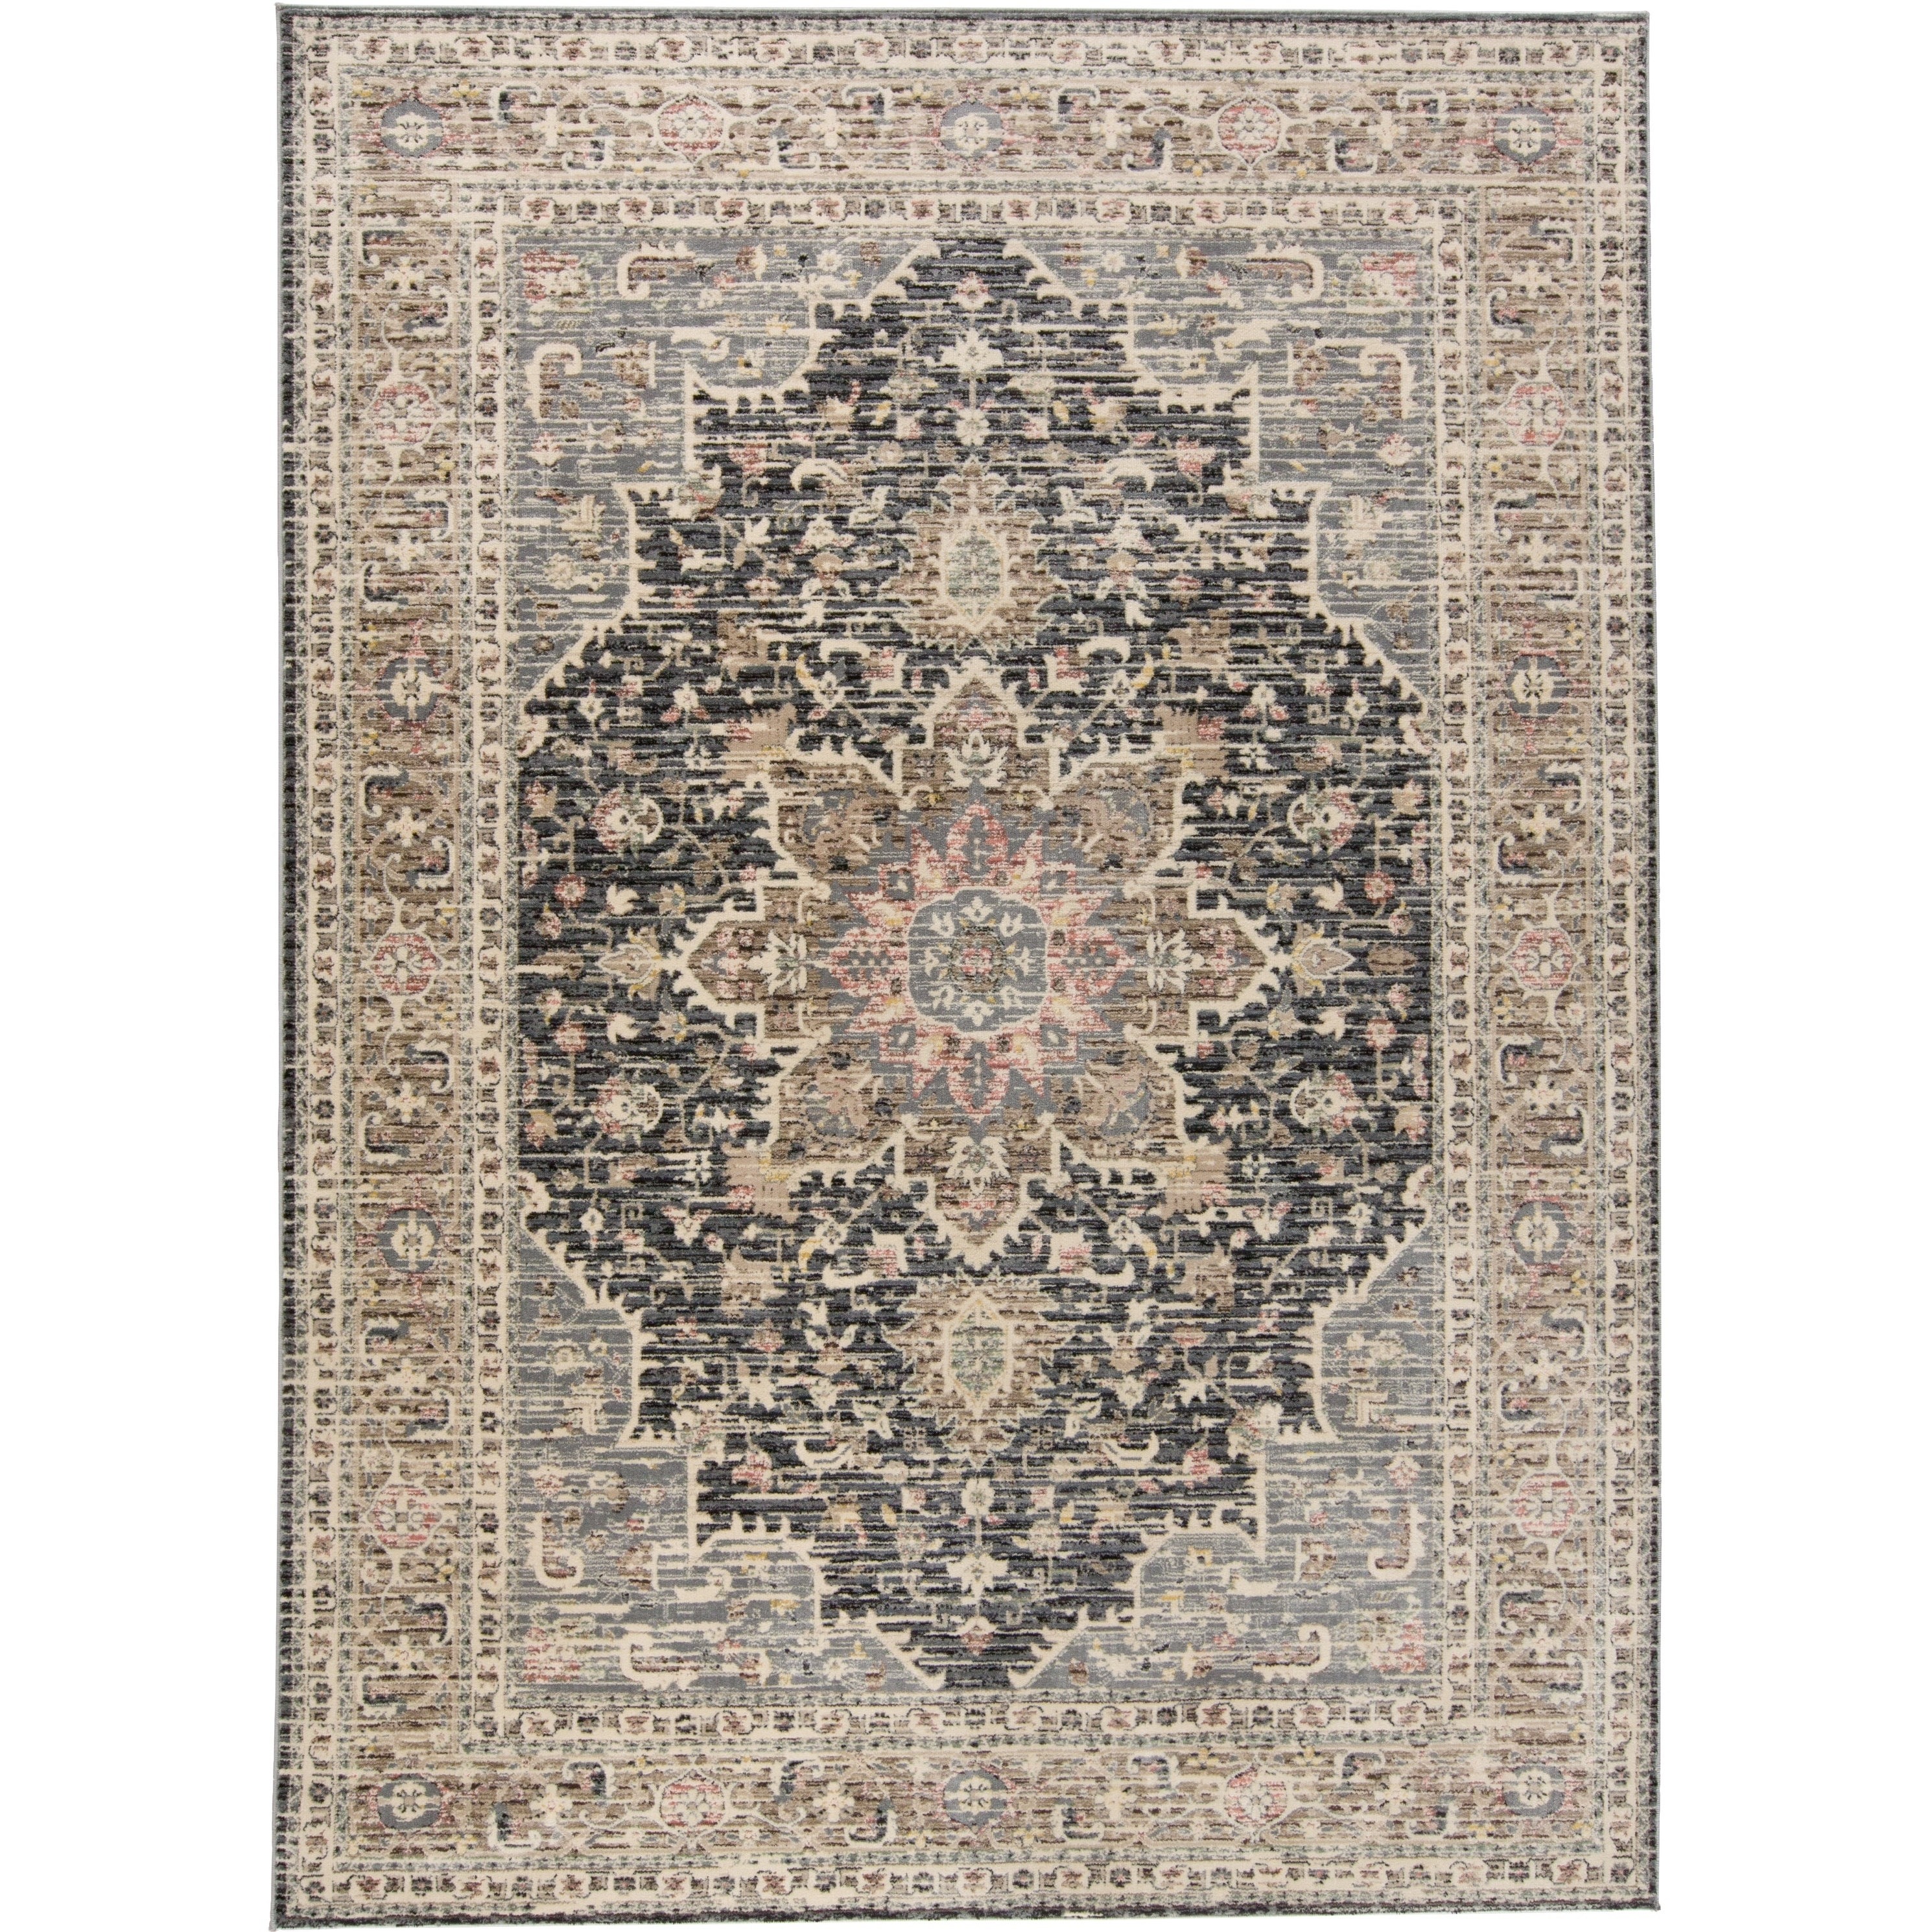 Grand Bazaar Huron Gray/Charcoal Rug - 411 x 78 (Grey/Charcoal - 411 x 78)